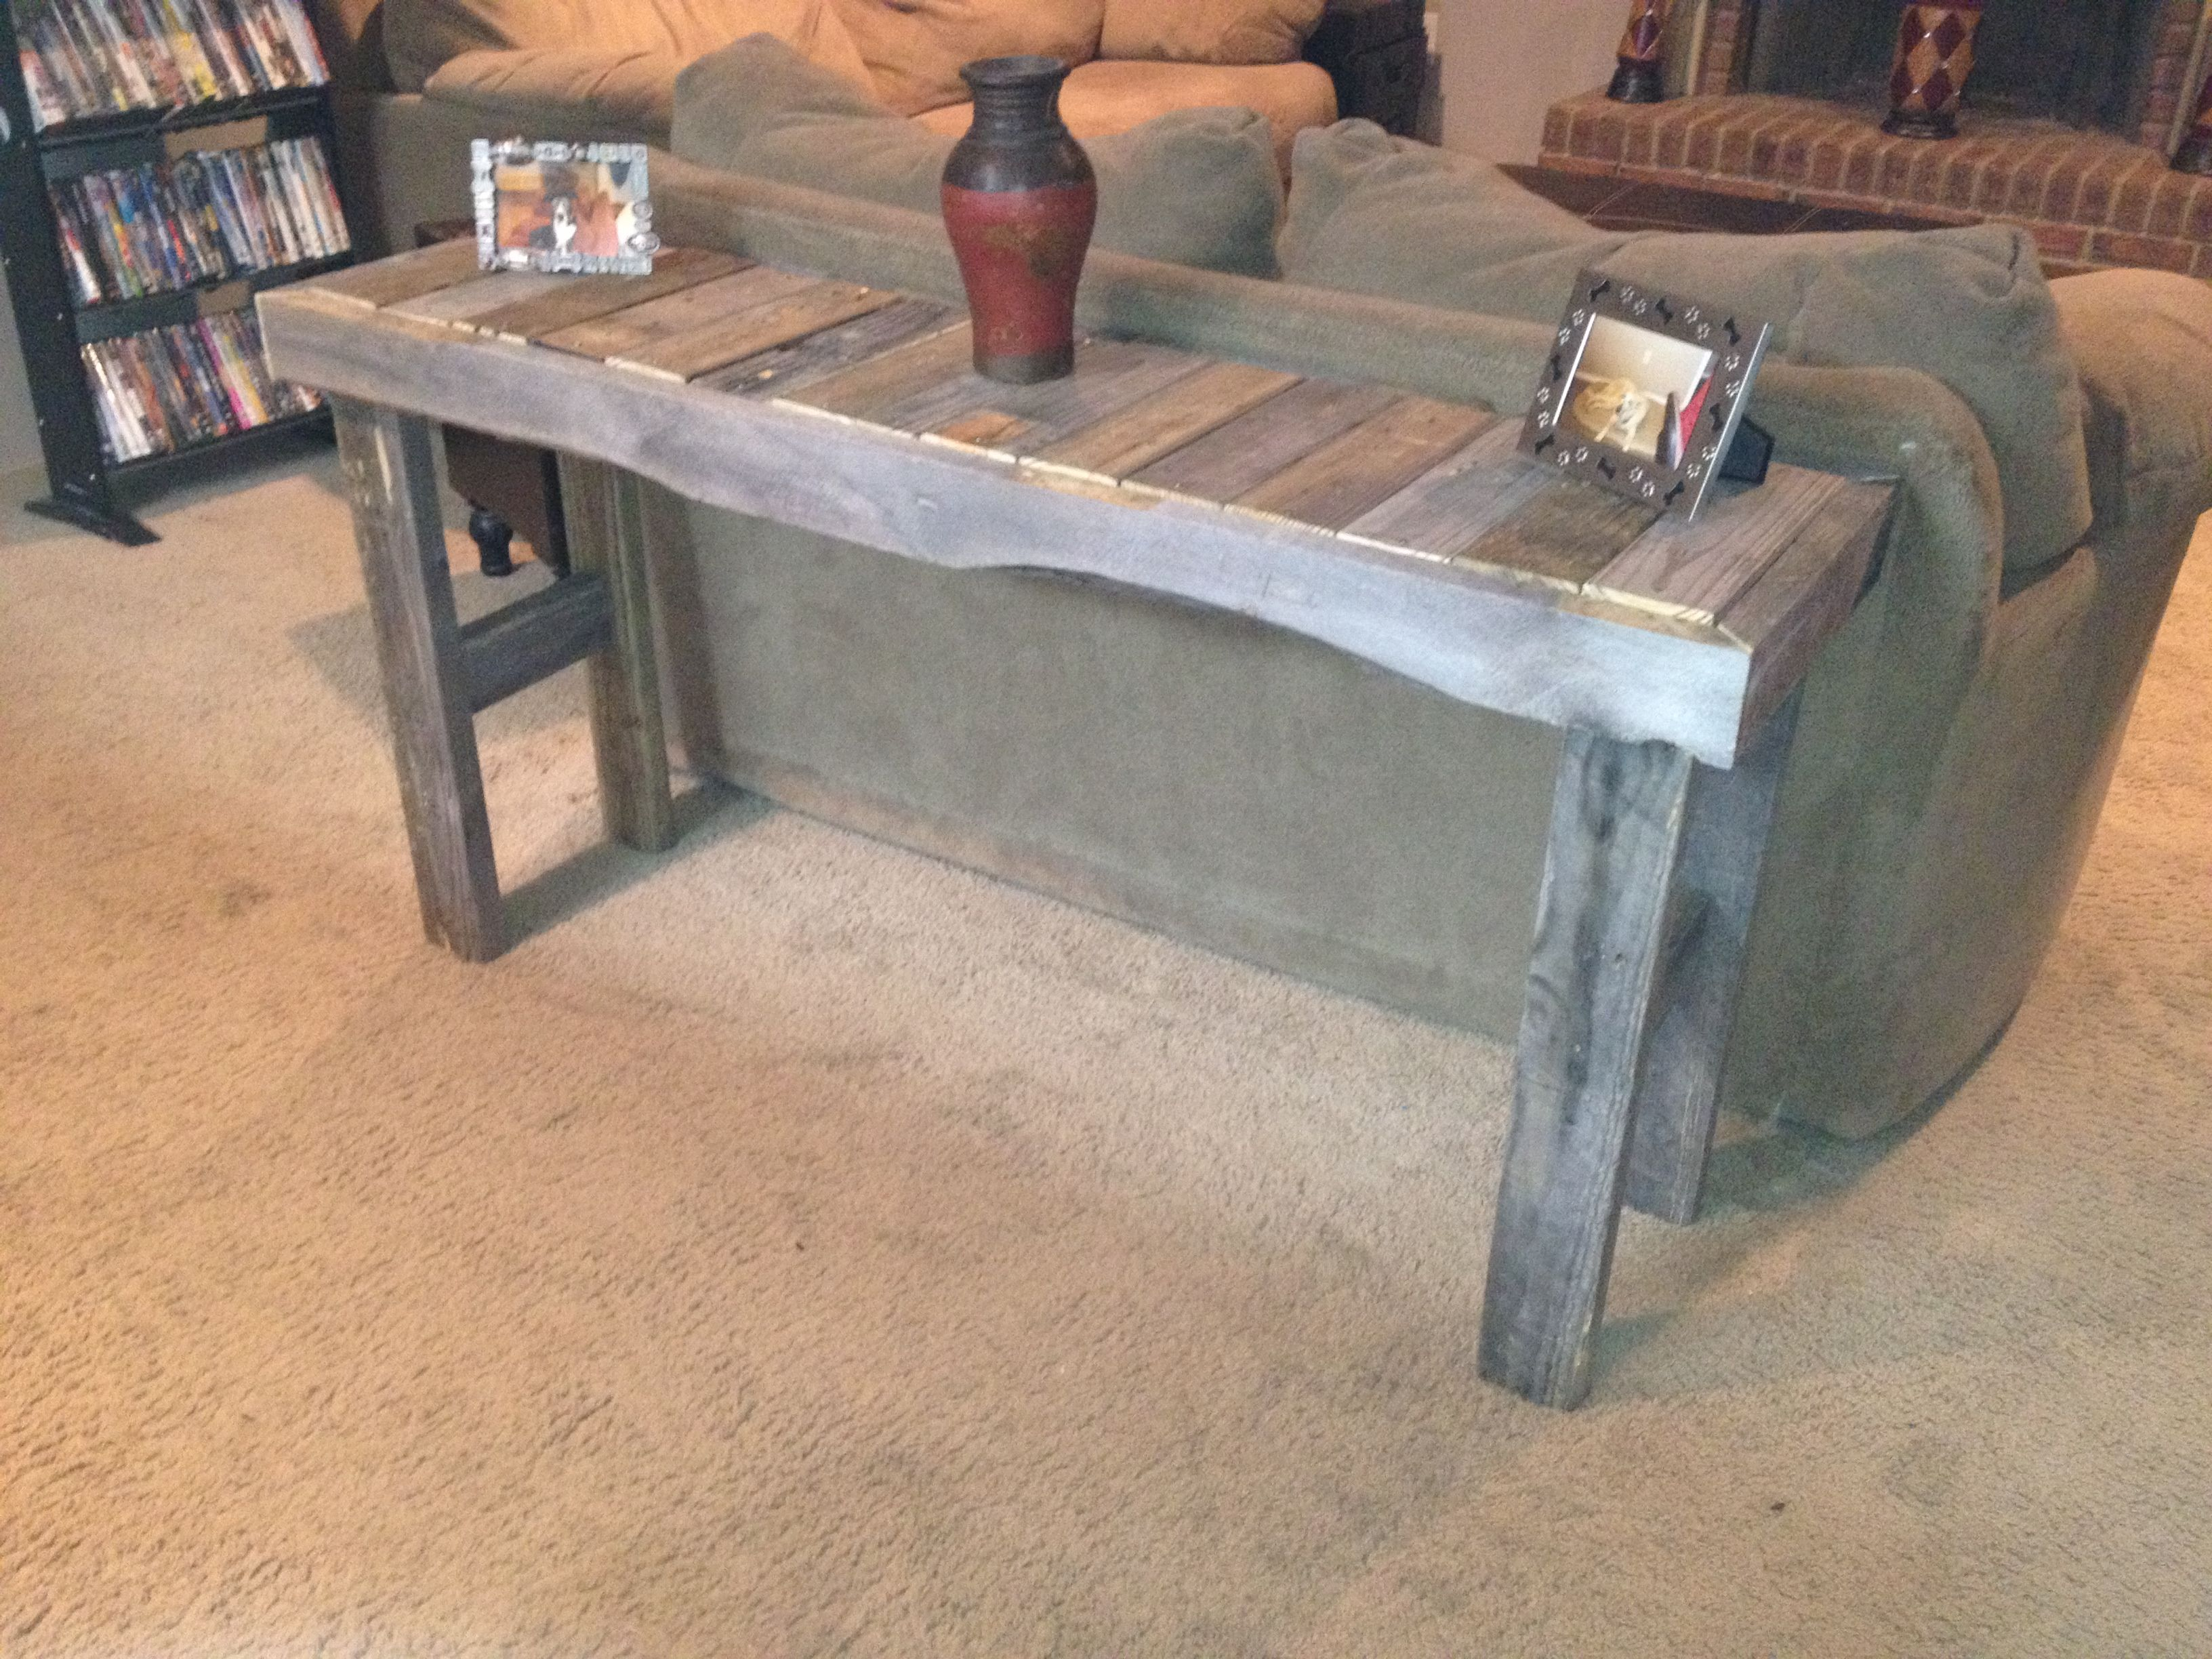 Sofa table made from pallets Things I built Pinterest